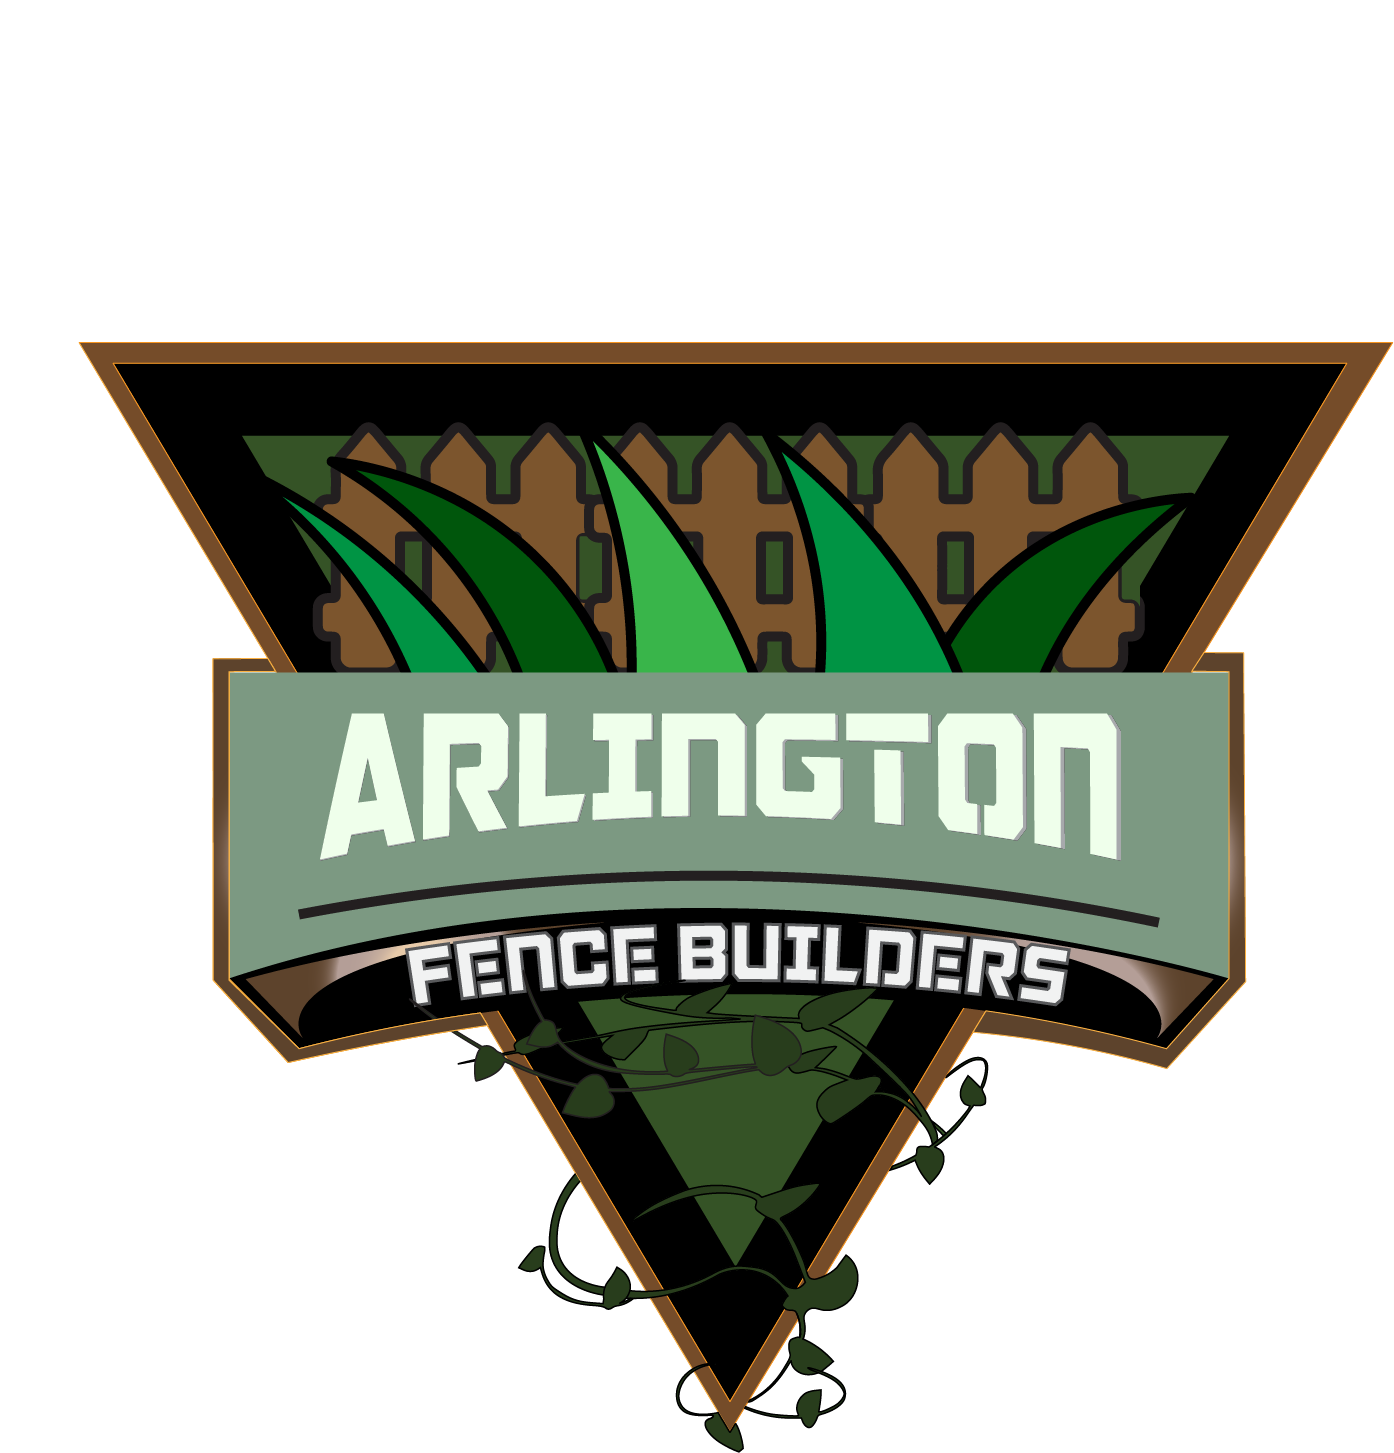 Arlington Fence Builders